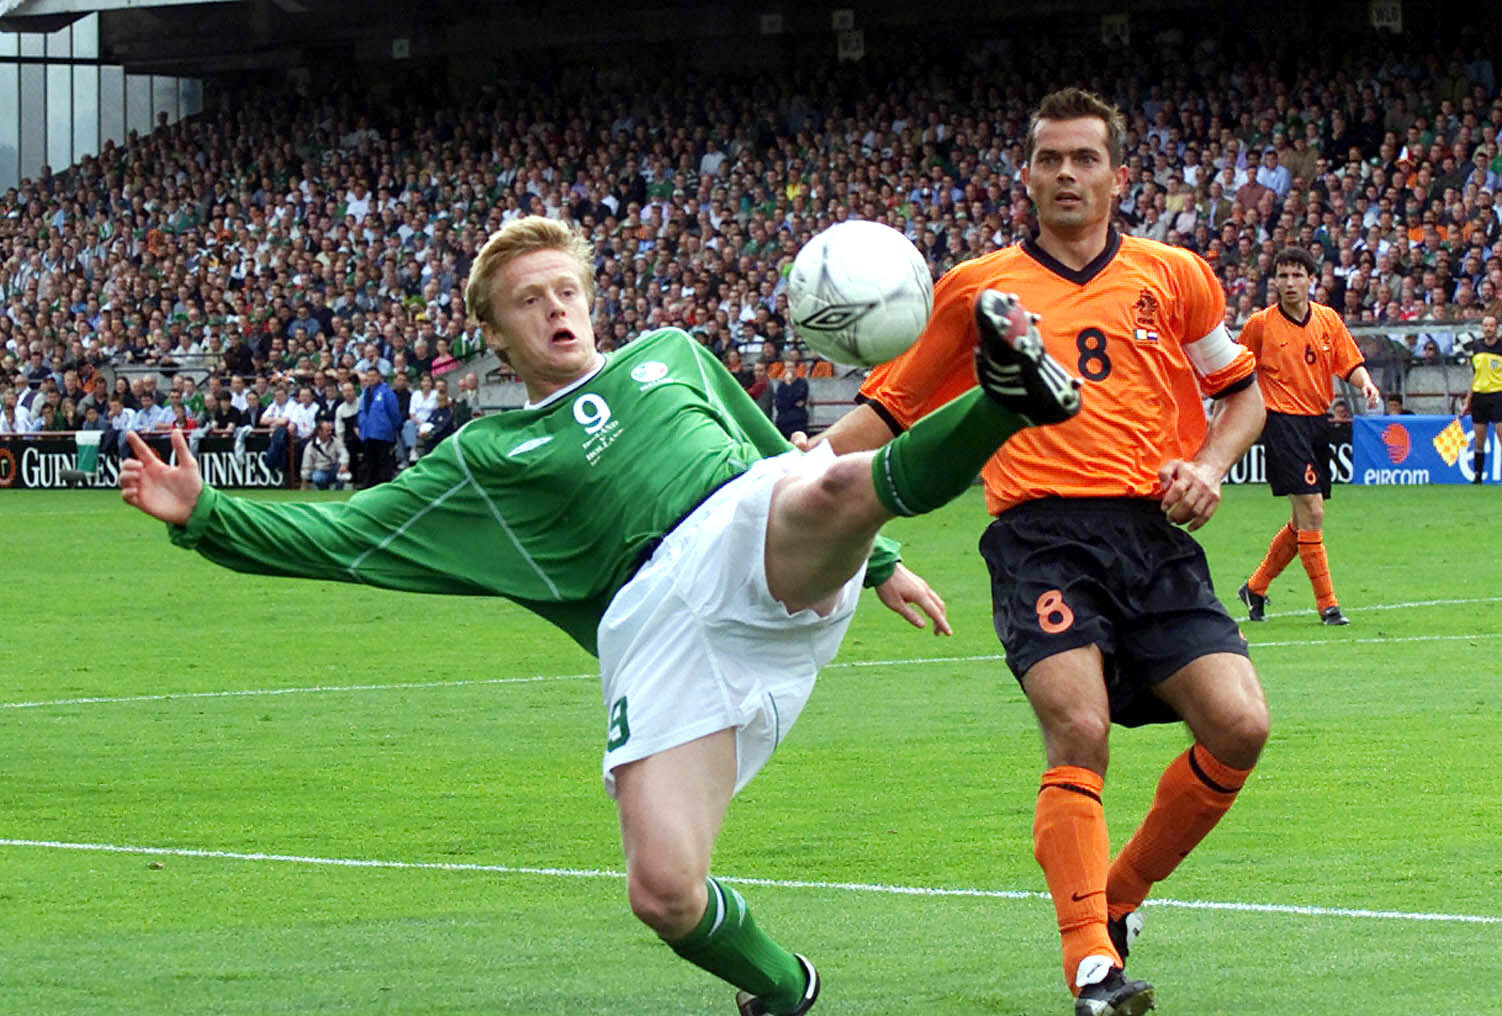 Cocu (right) won 101 caps for Holland, and reached the World Cup semi-finals